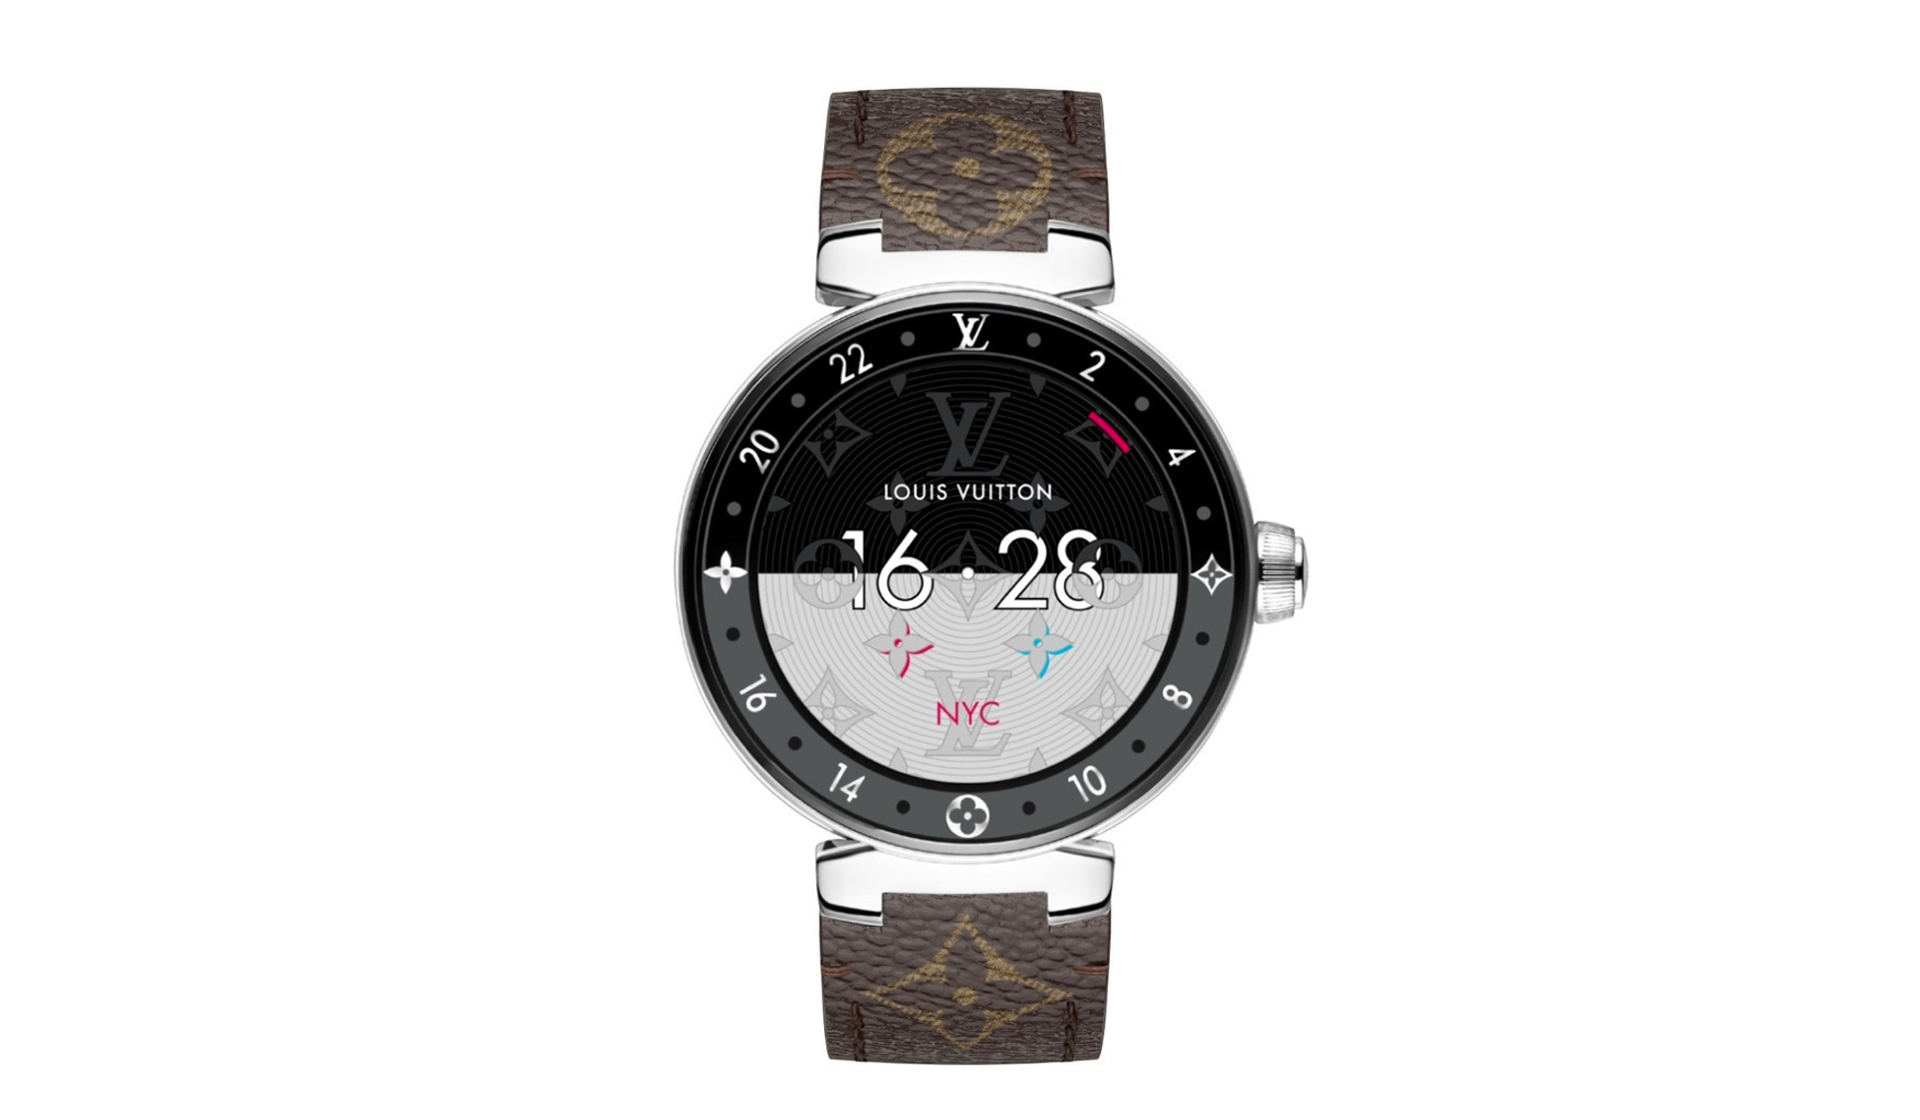 Louis Vuitton Smart Watch